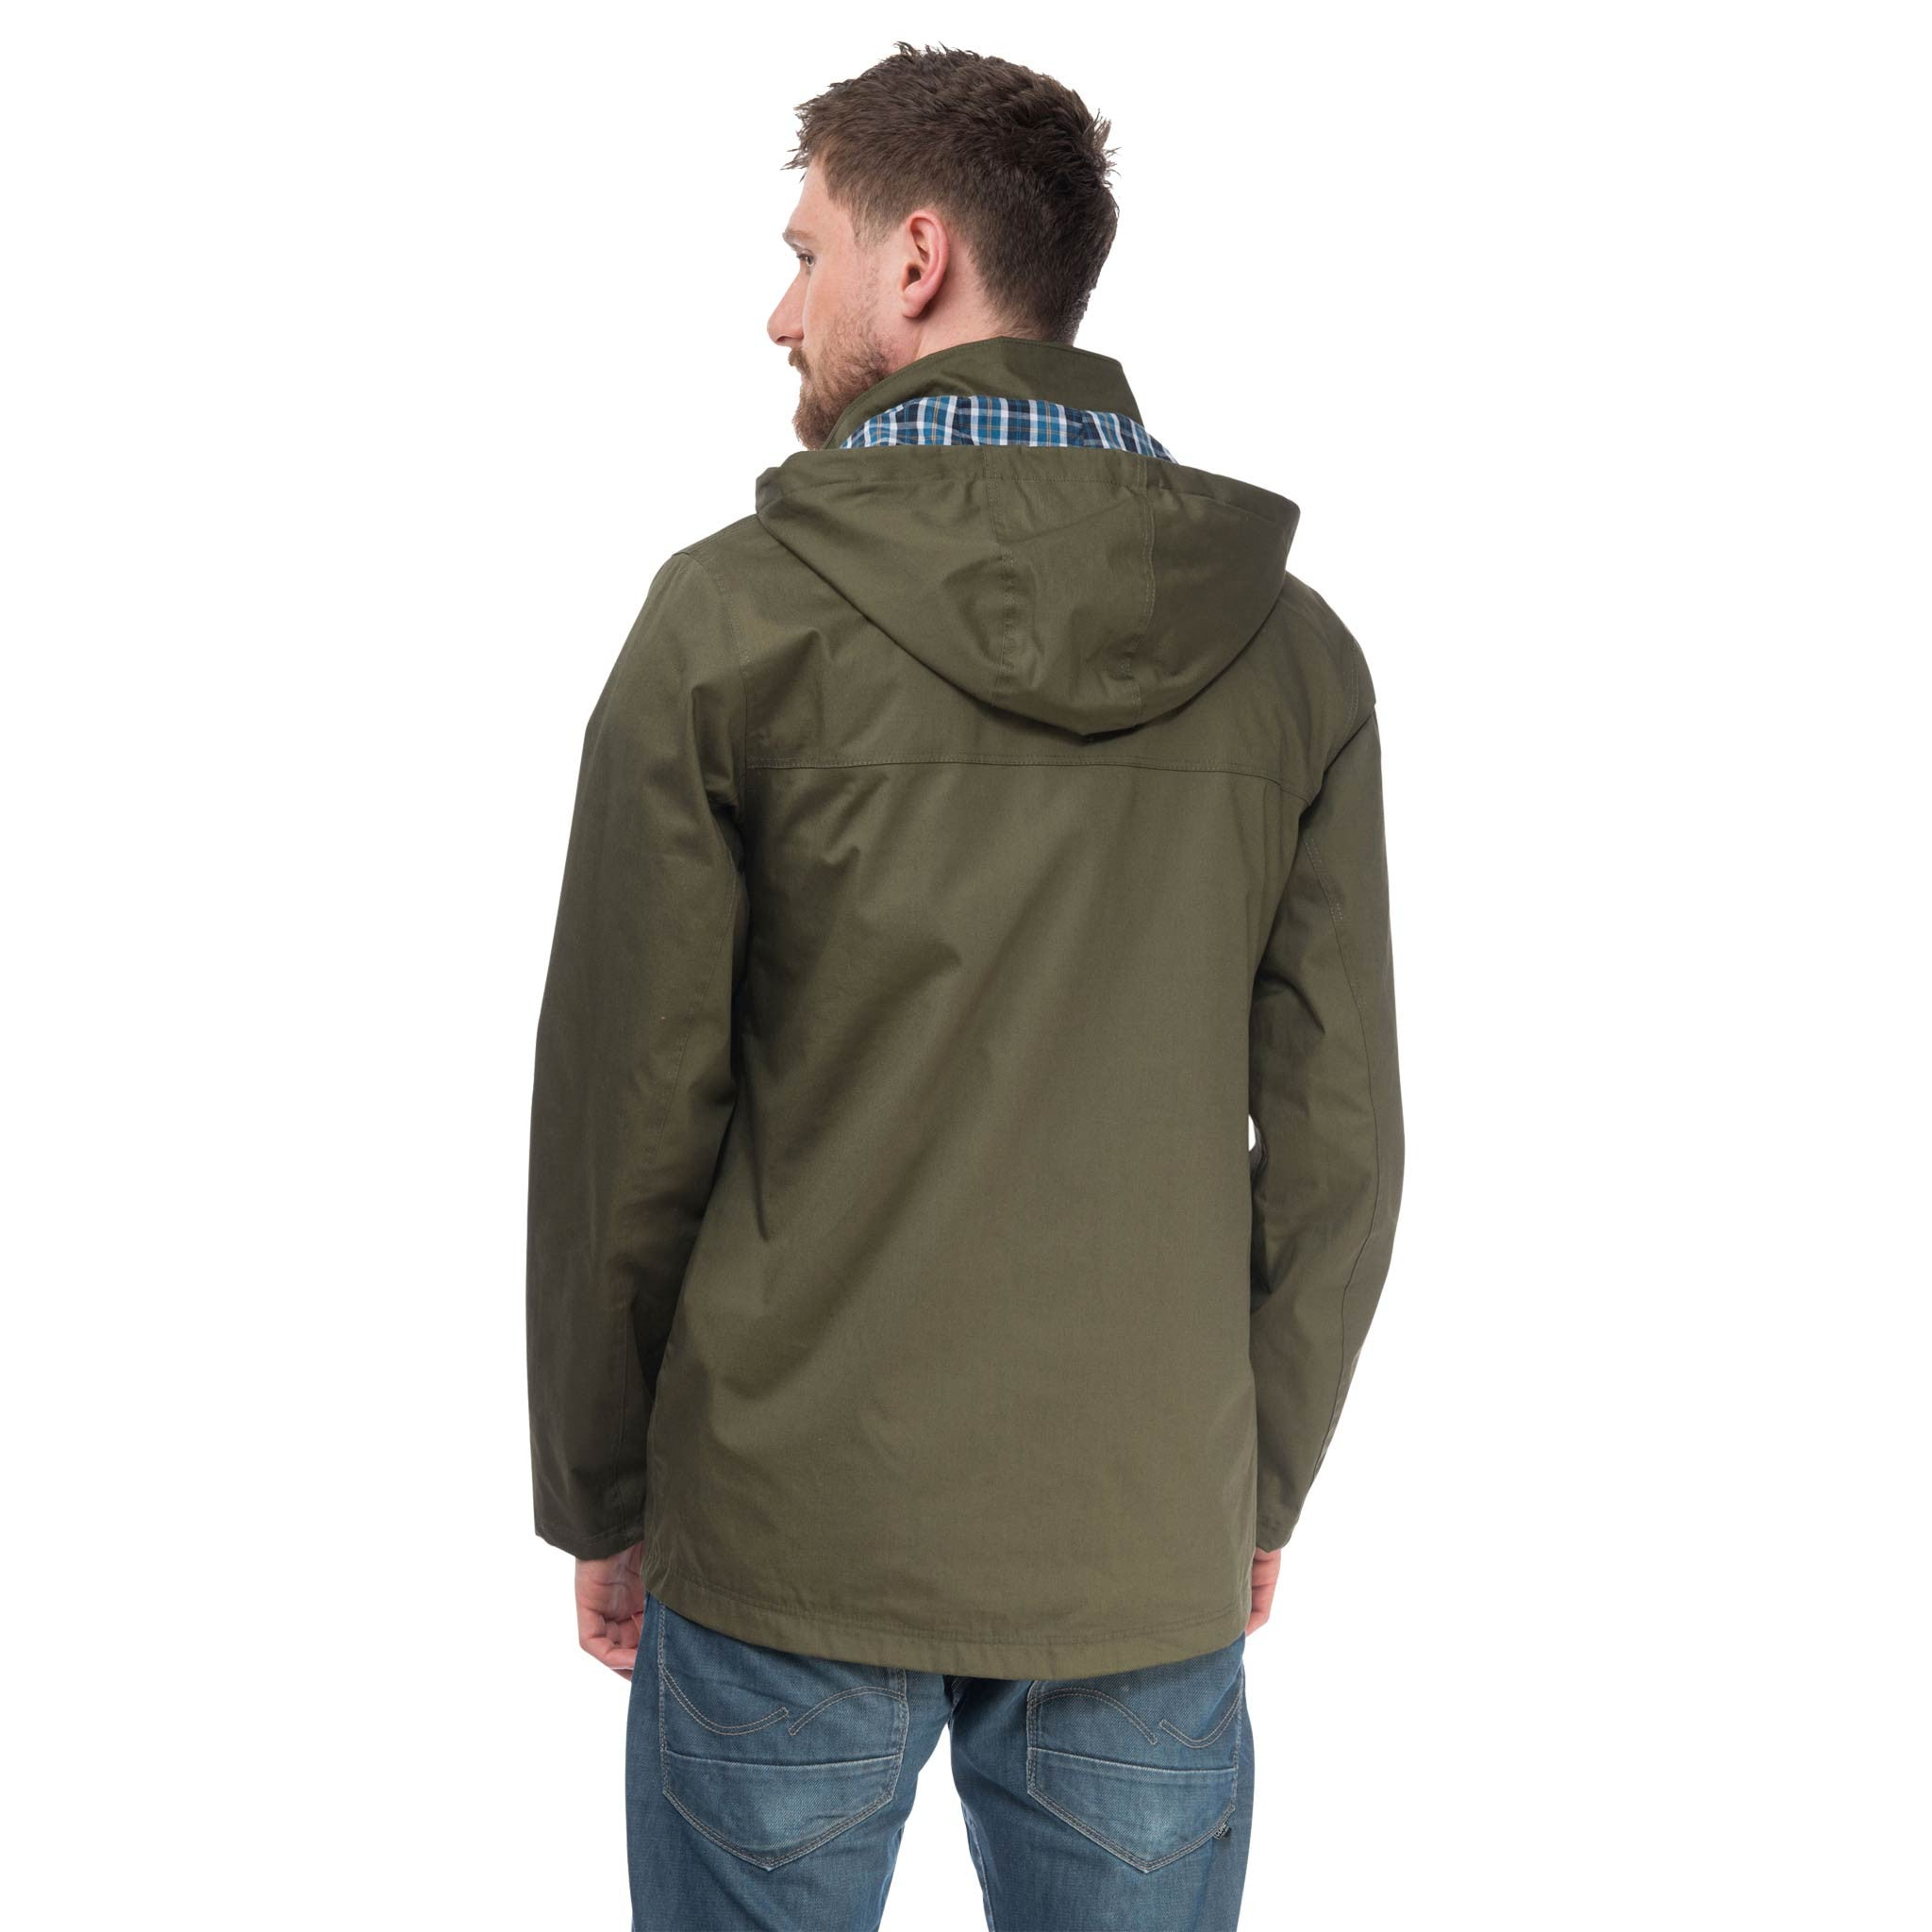 Rigger Mens Waterproof Jacket with Cotton Outer, in Olive, Modelled Back View | Lighthouse